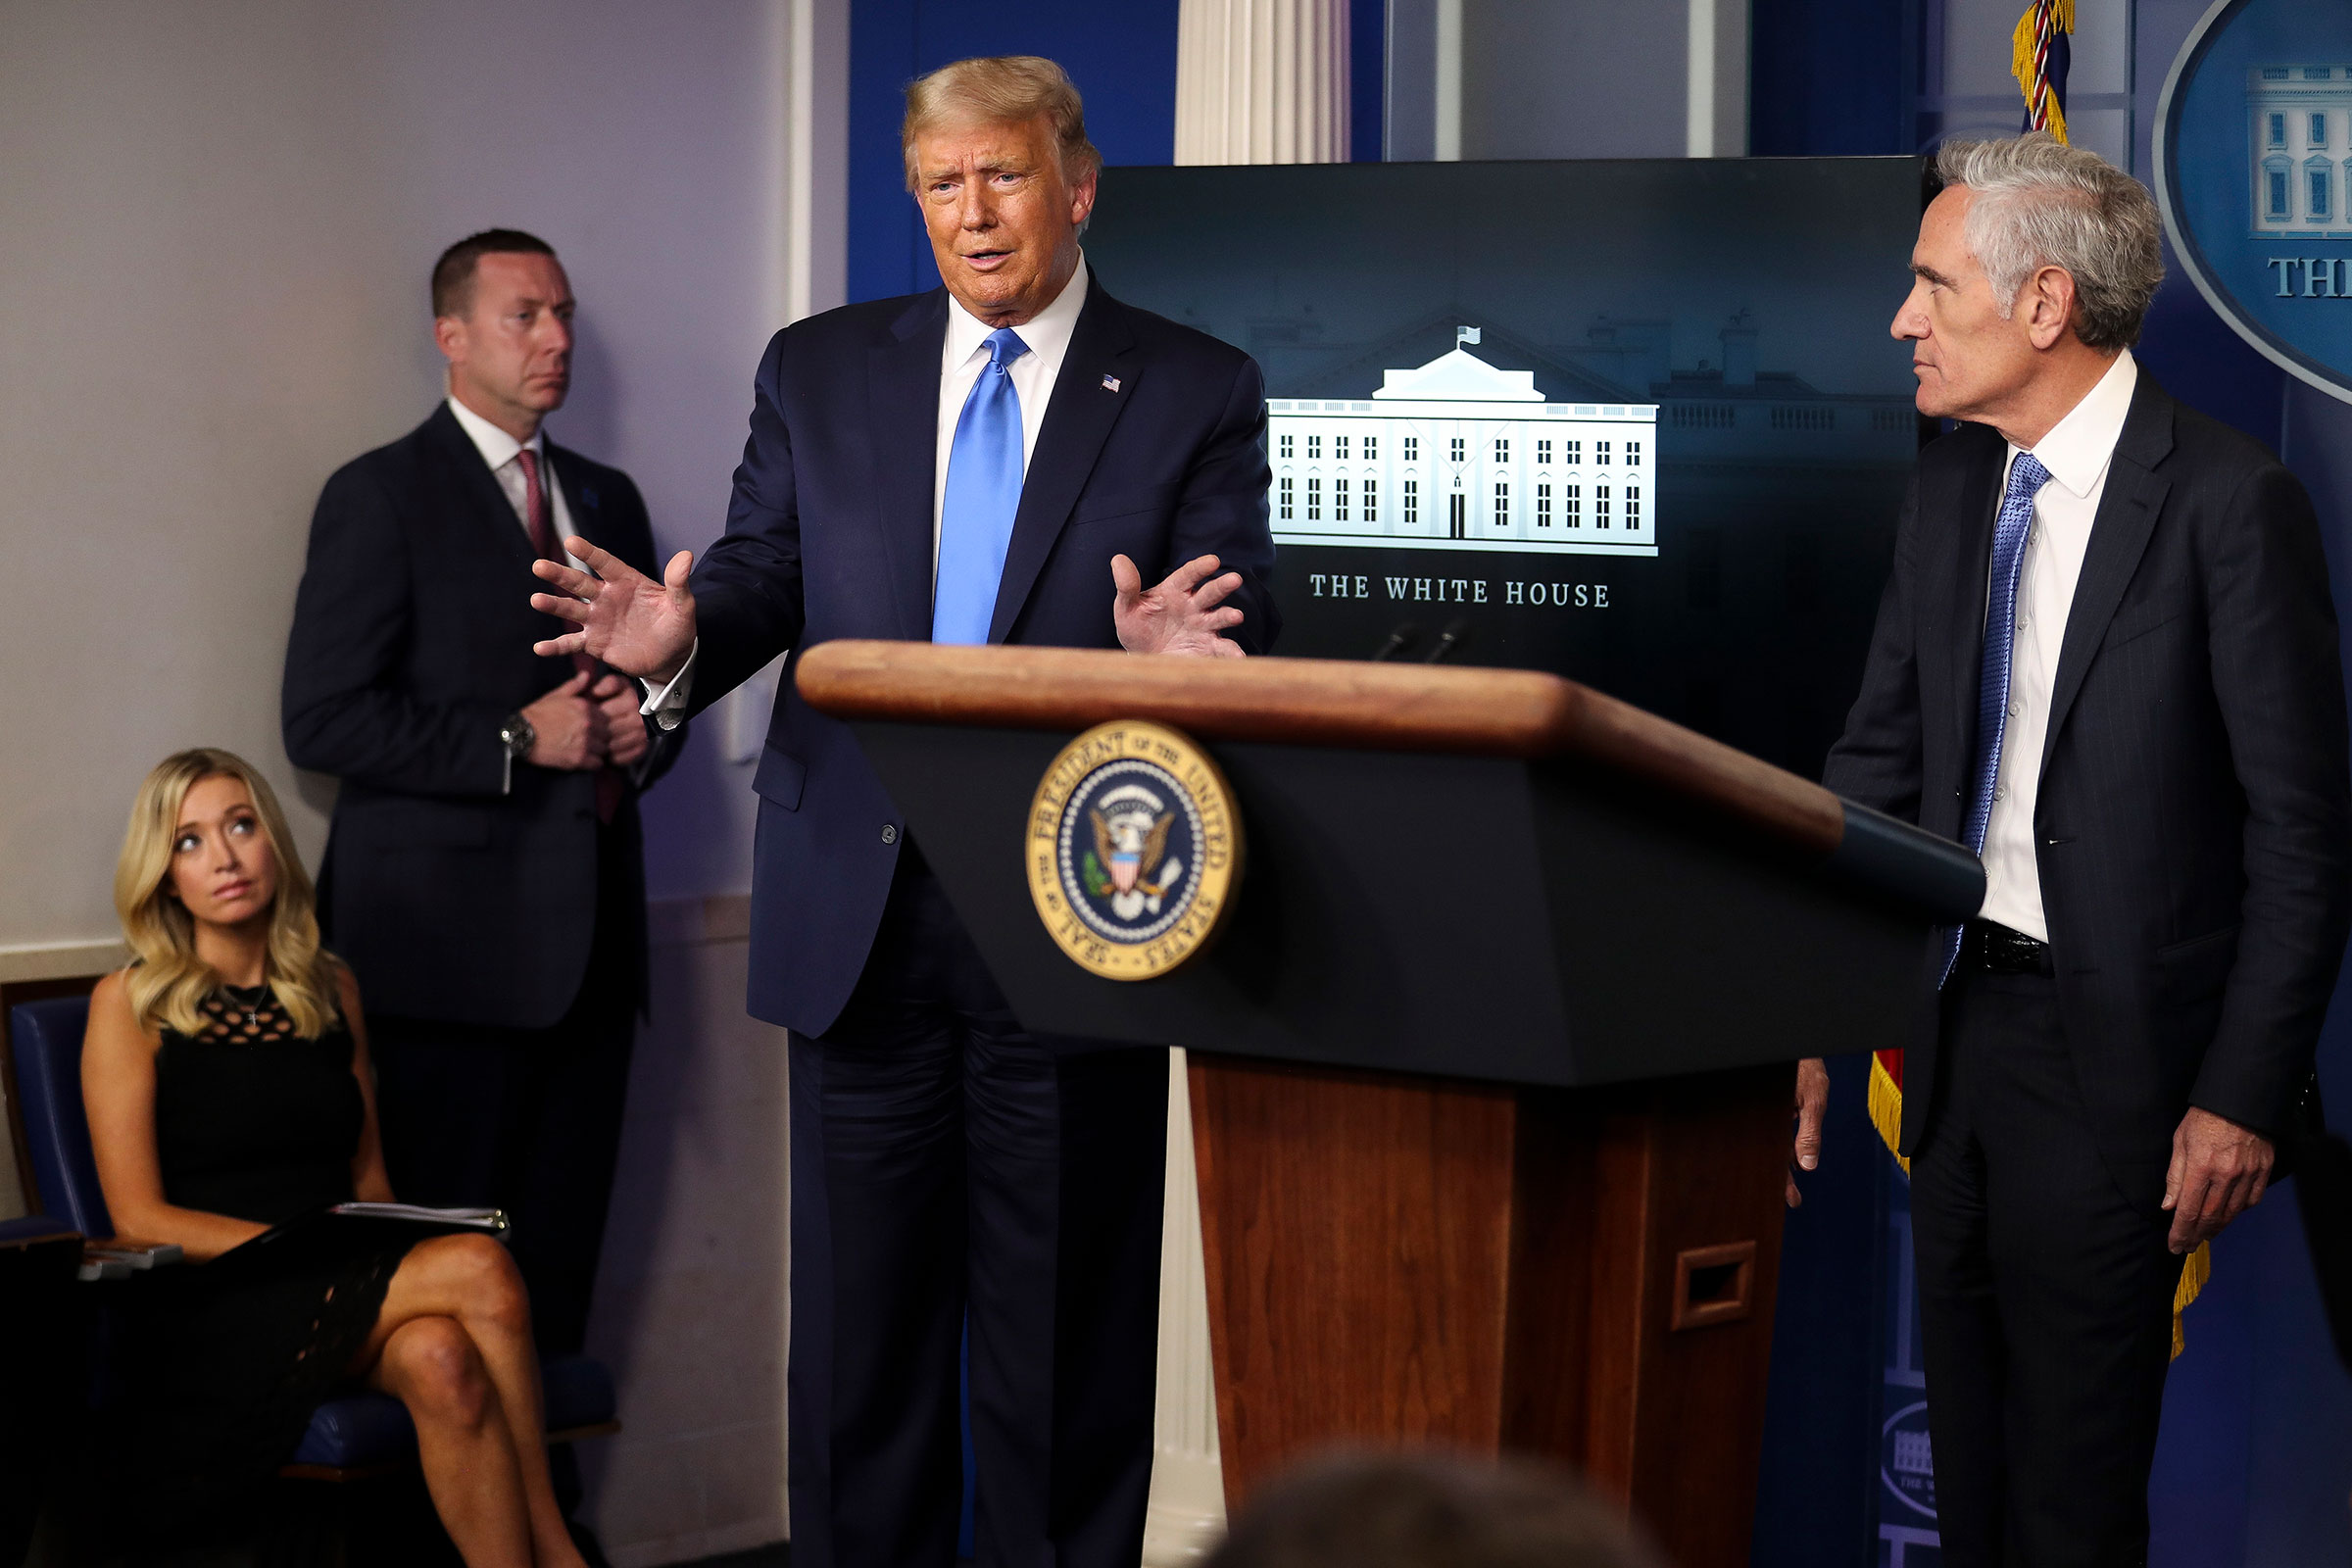 President Donald Trump speaks as Dr. Scott Atlas, a White House adviser on the coronavirus, right, and White House Press Secretary Kayleigh McEnany, far left, listen during a press briefing at the White House in Washington, on Wednesday, Sept. 23, 2020. (Oliver Contreras/The New York Times)